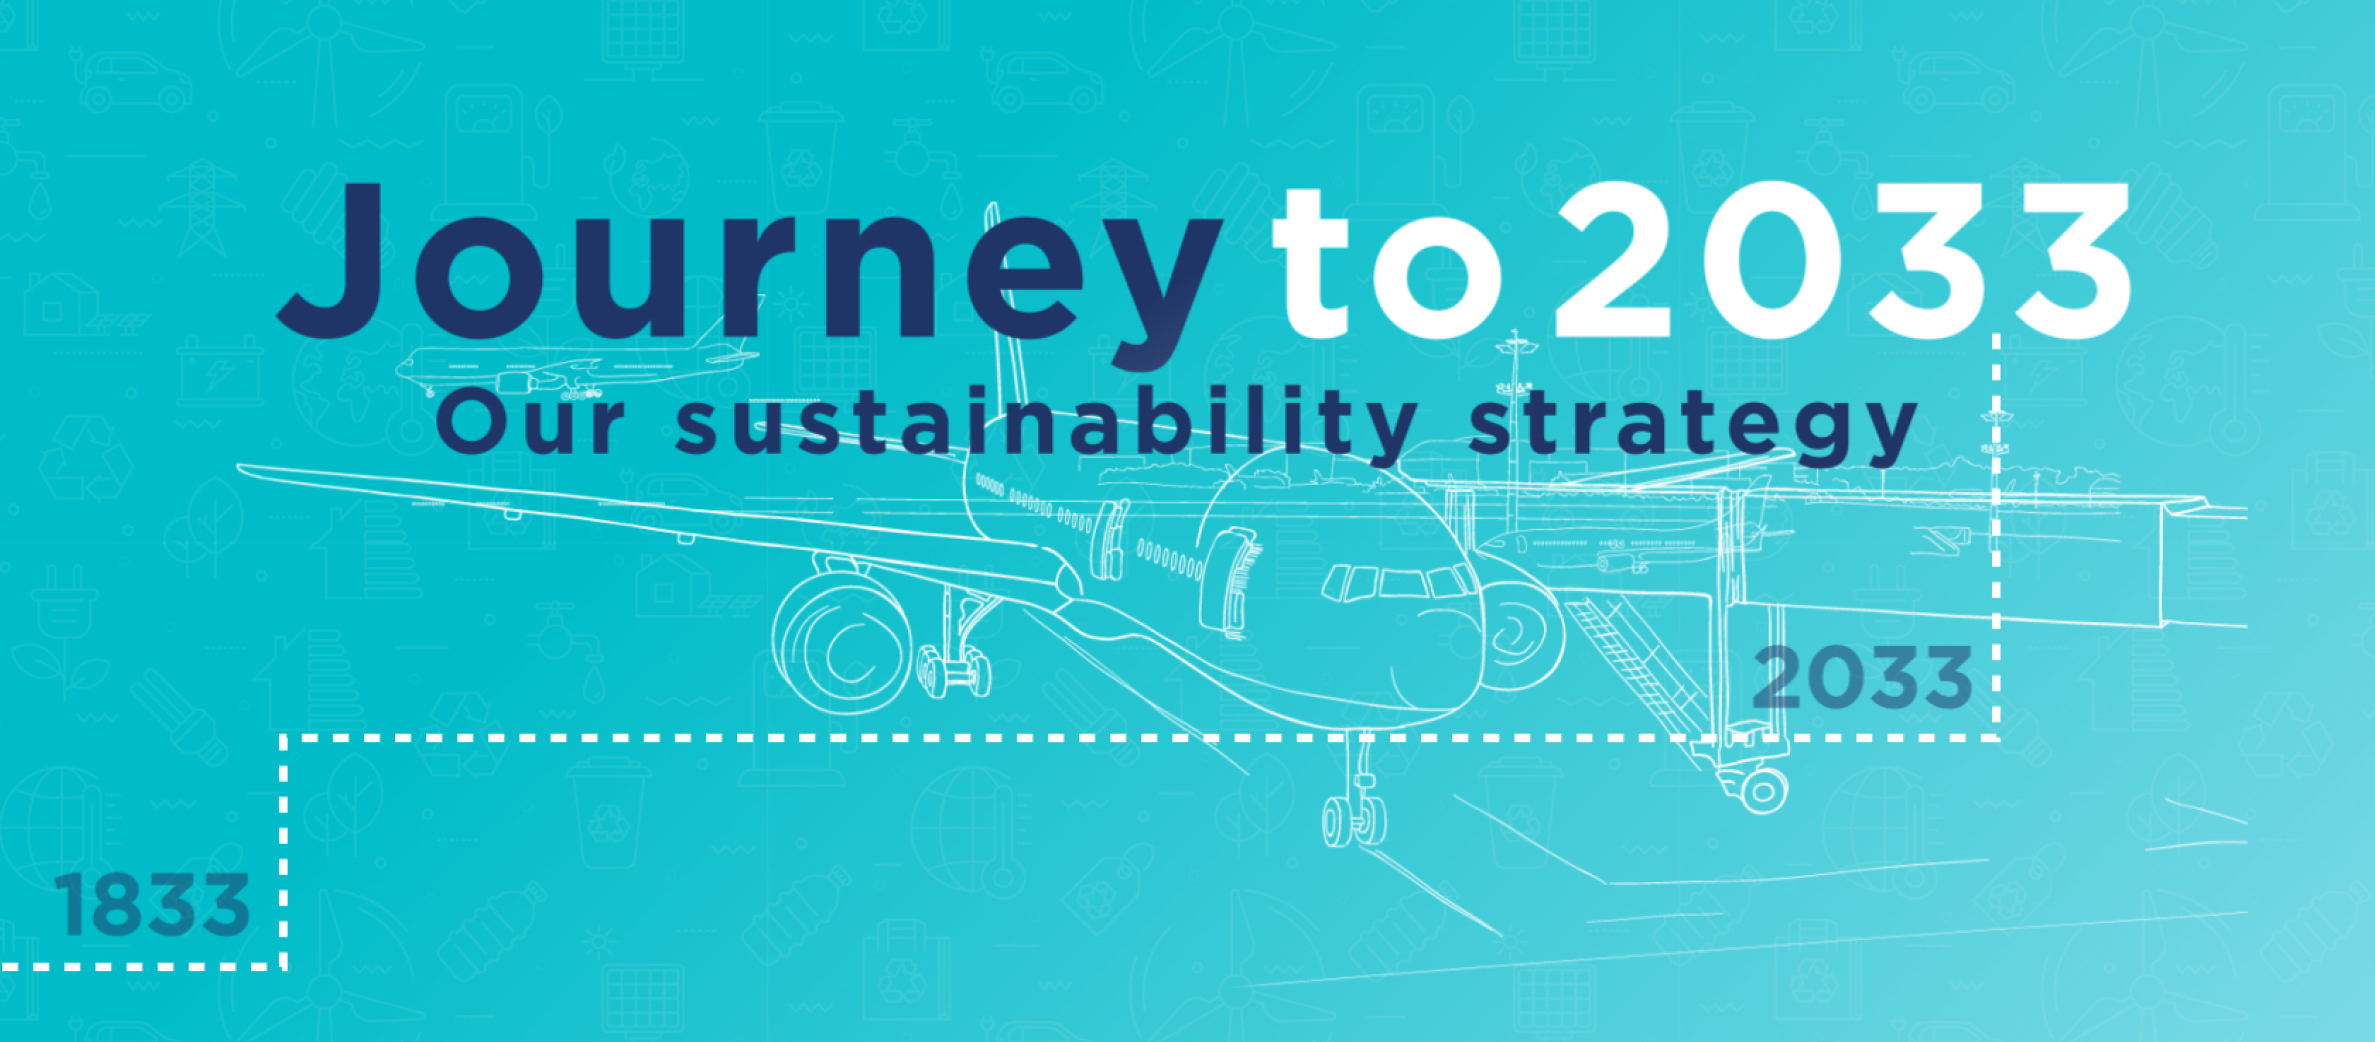 Sustainability strategy graphic